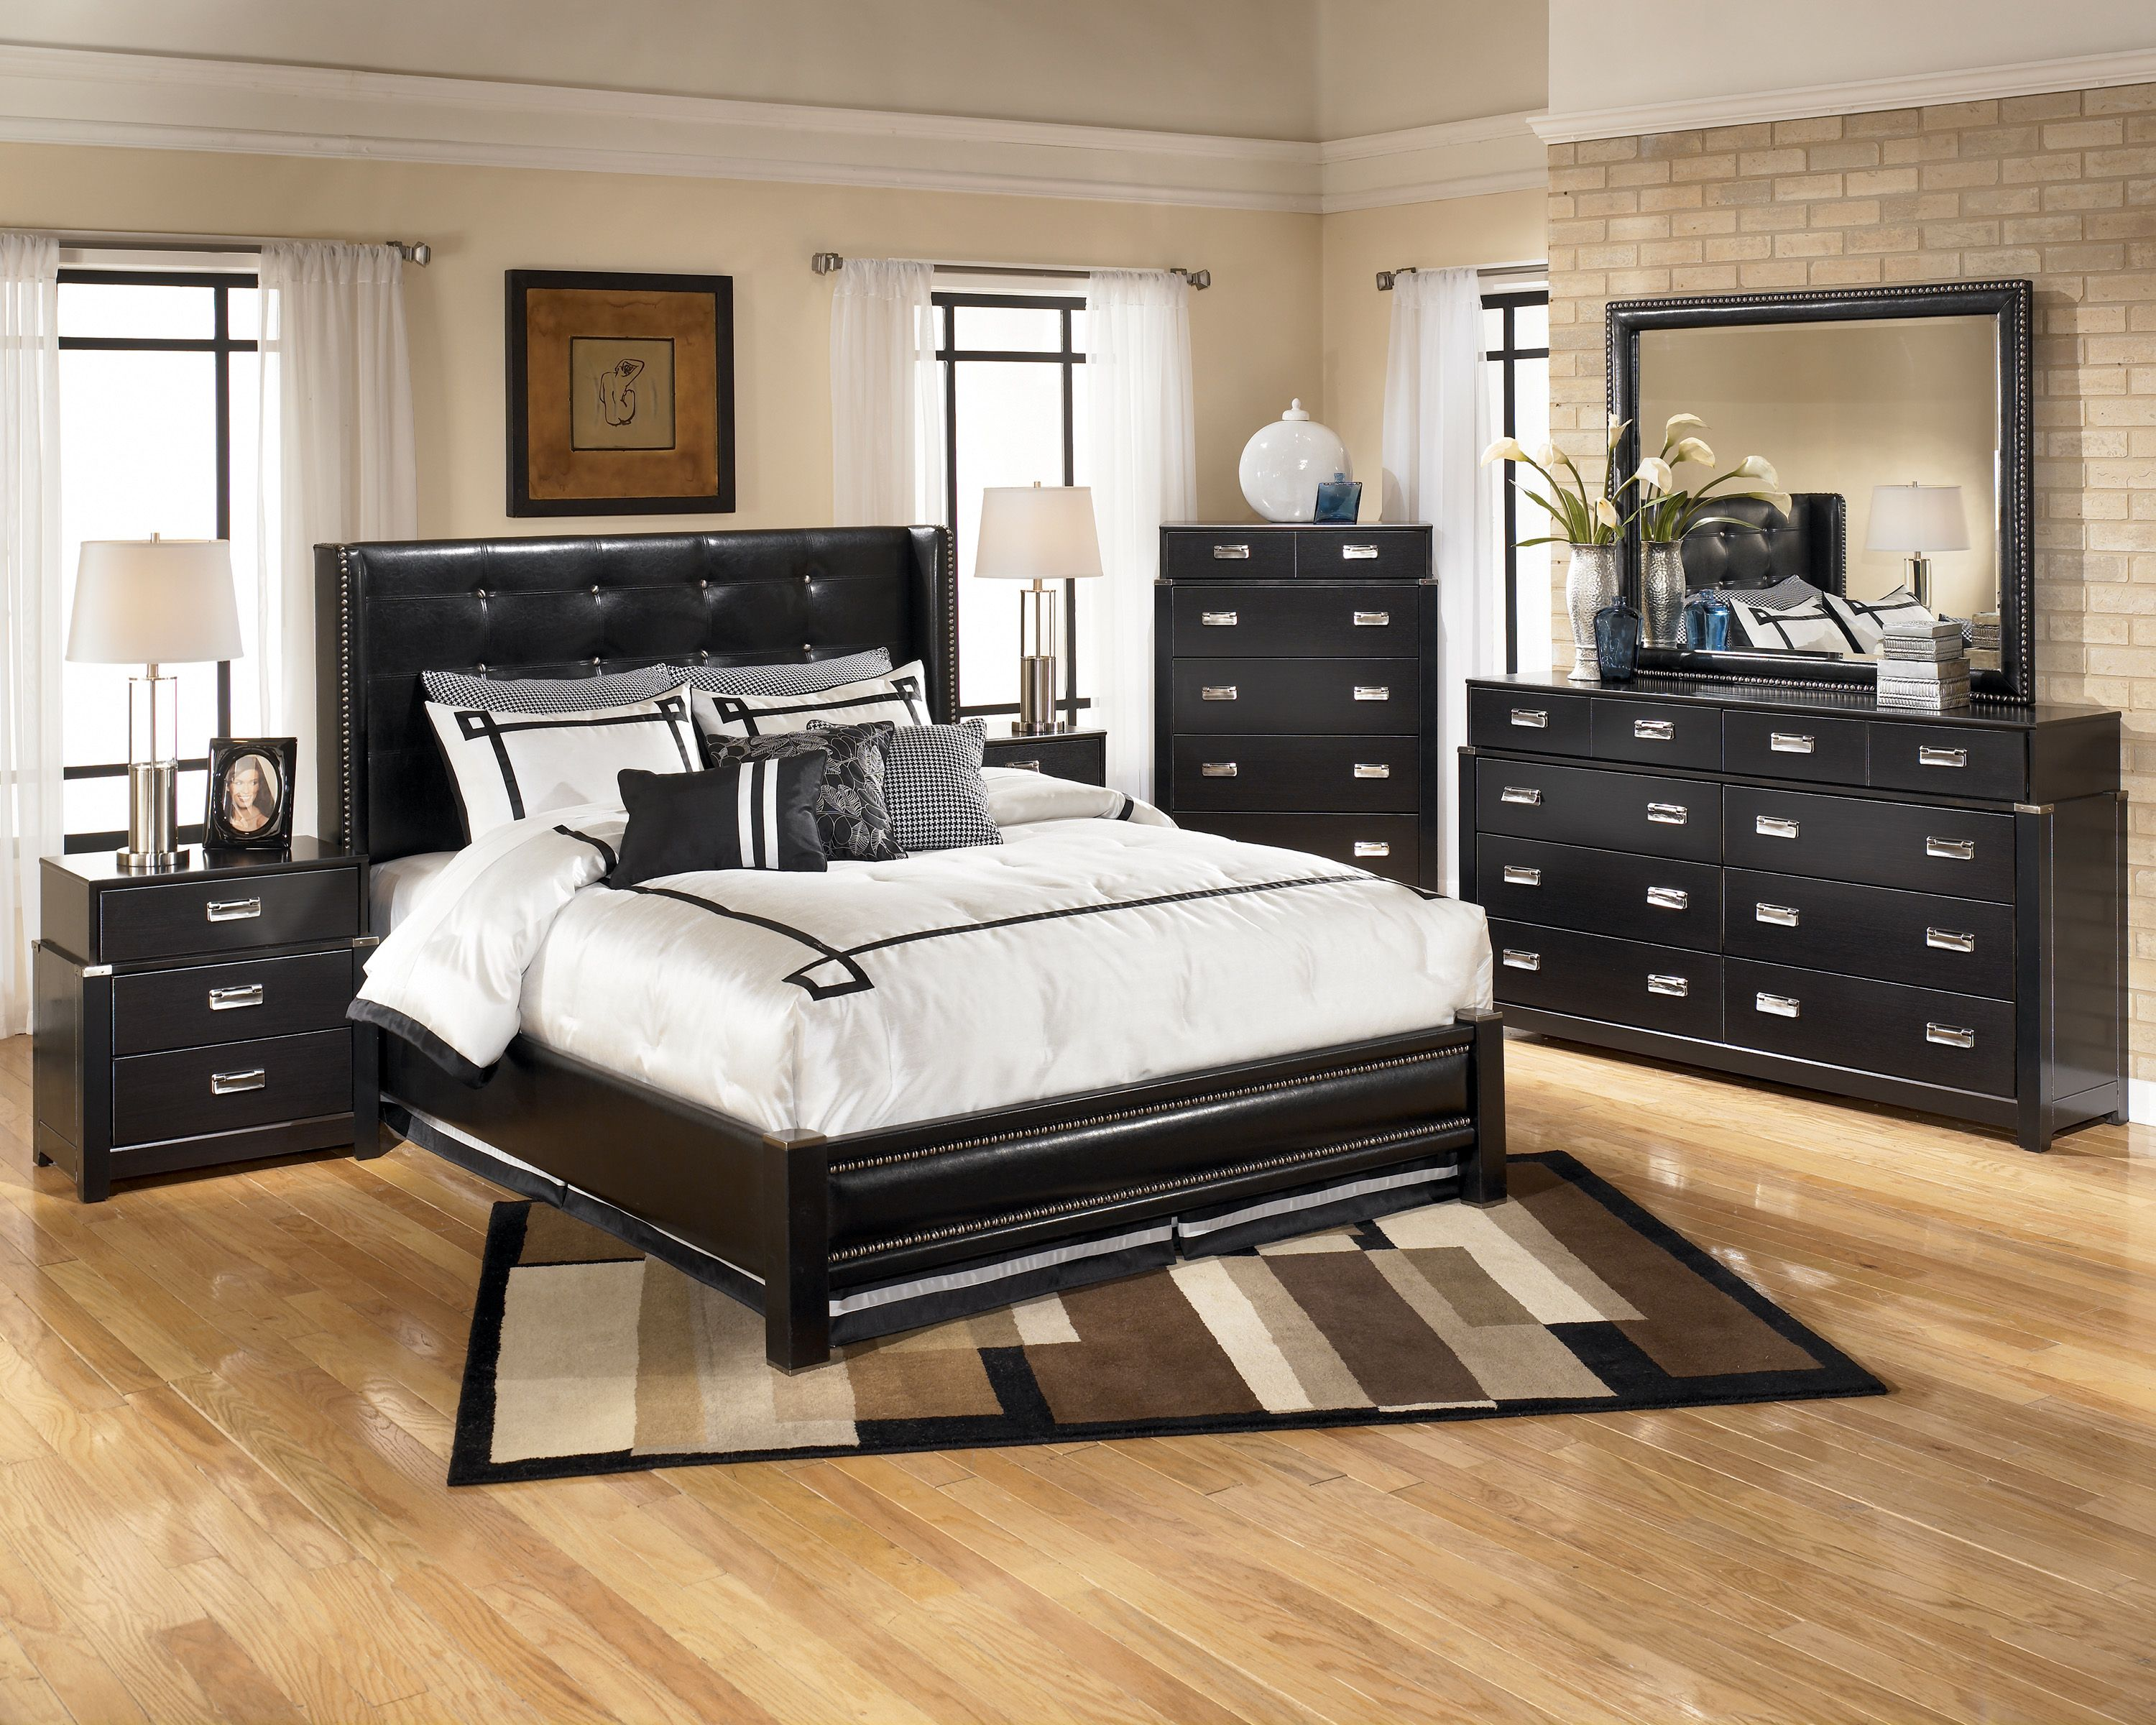 ashley marvelous furniture fresh mirrors bedroom dresser inspiration design decoration dressers cozy